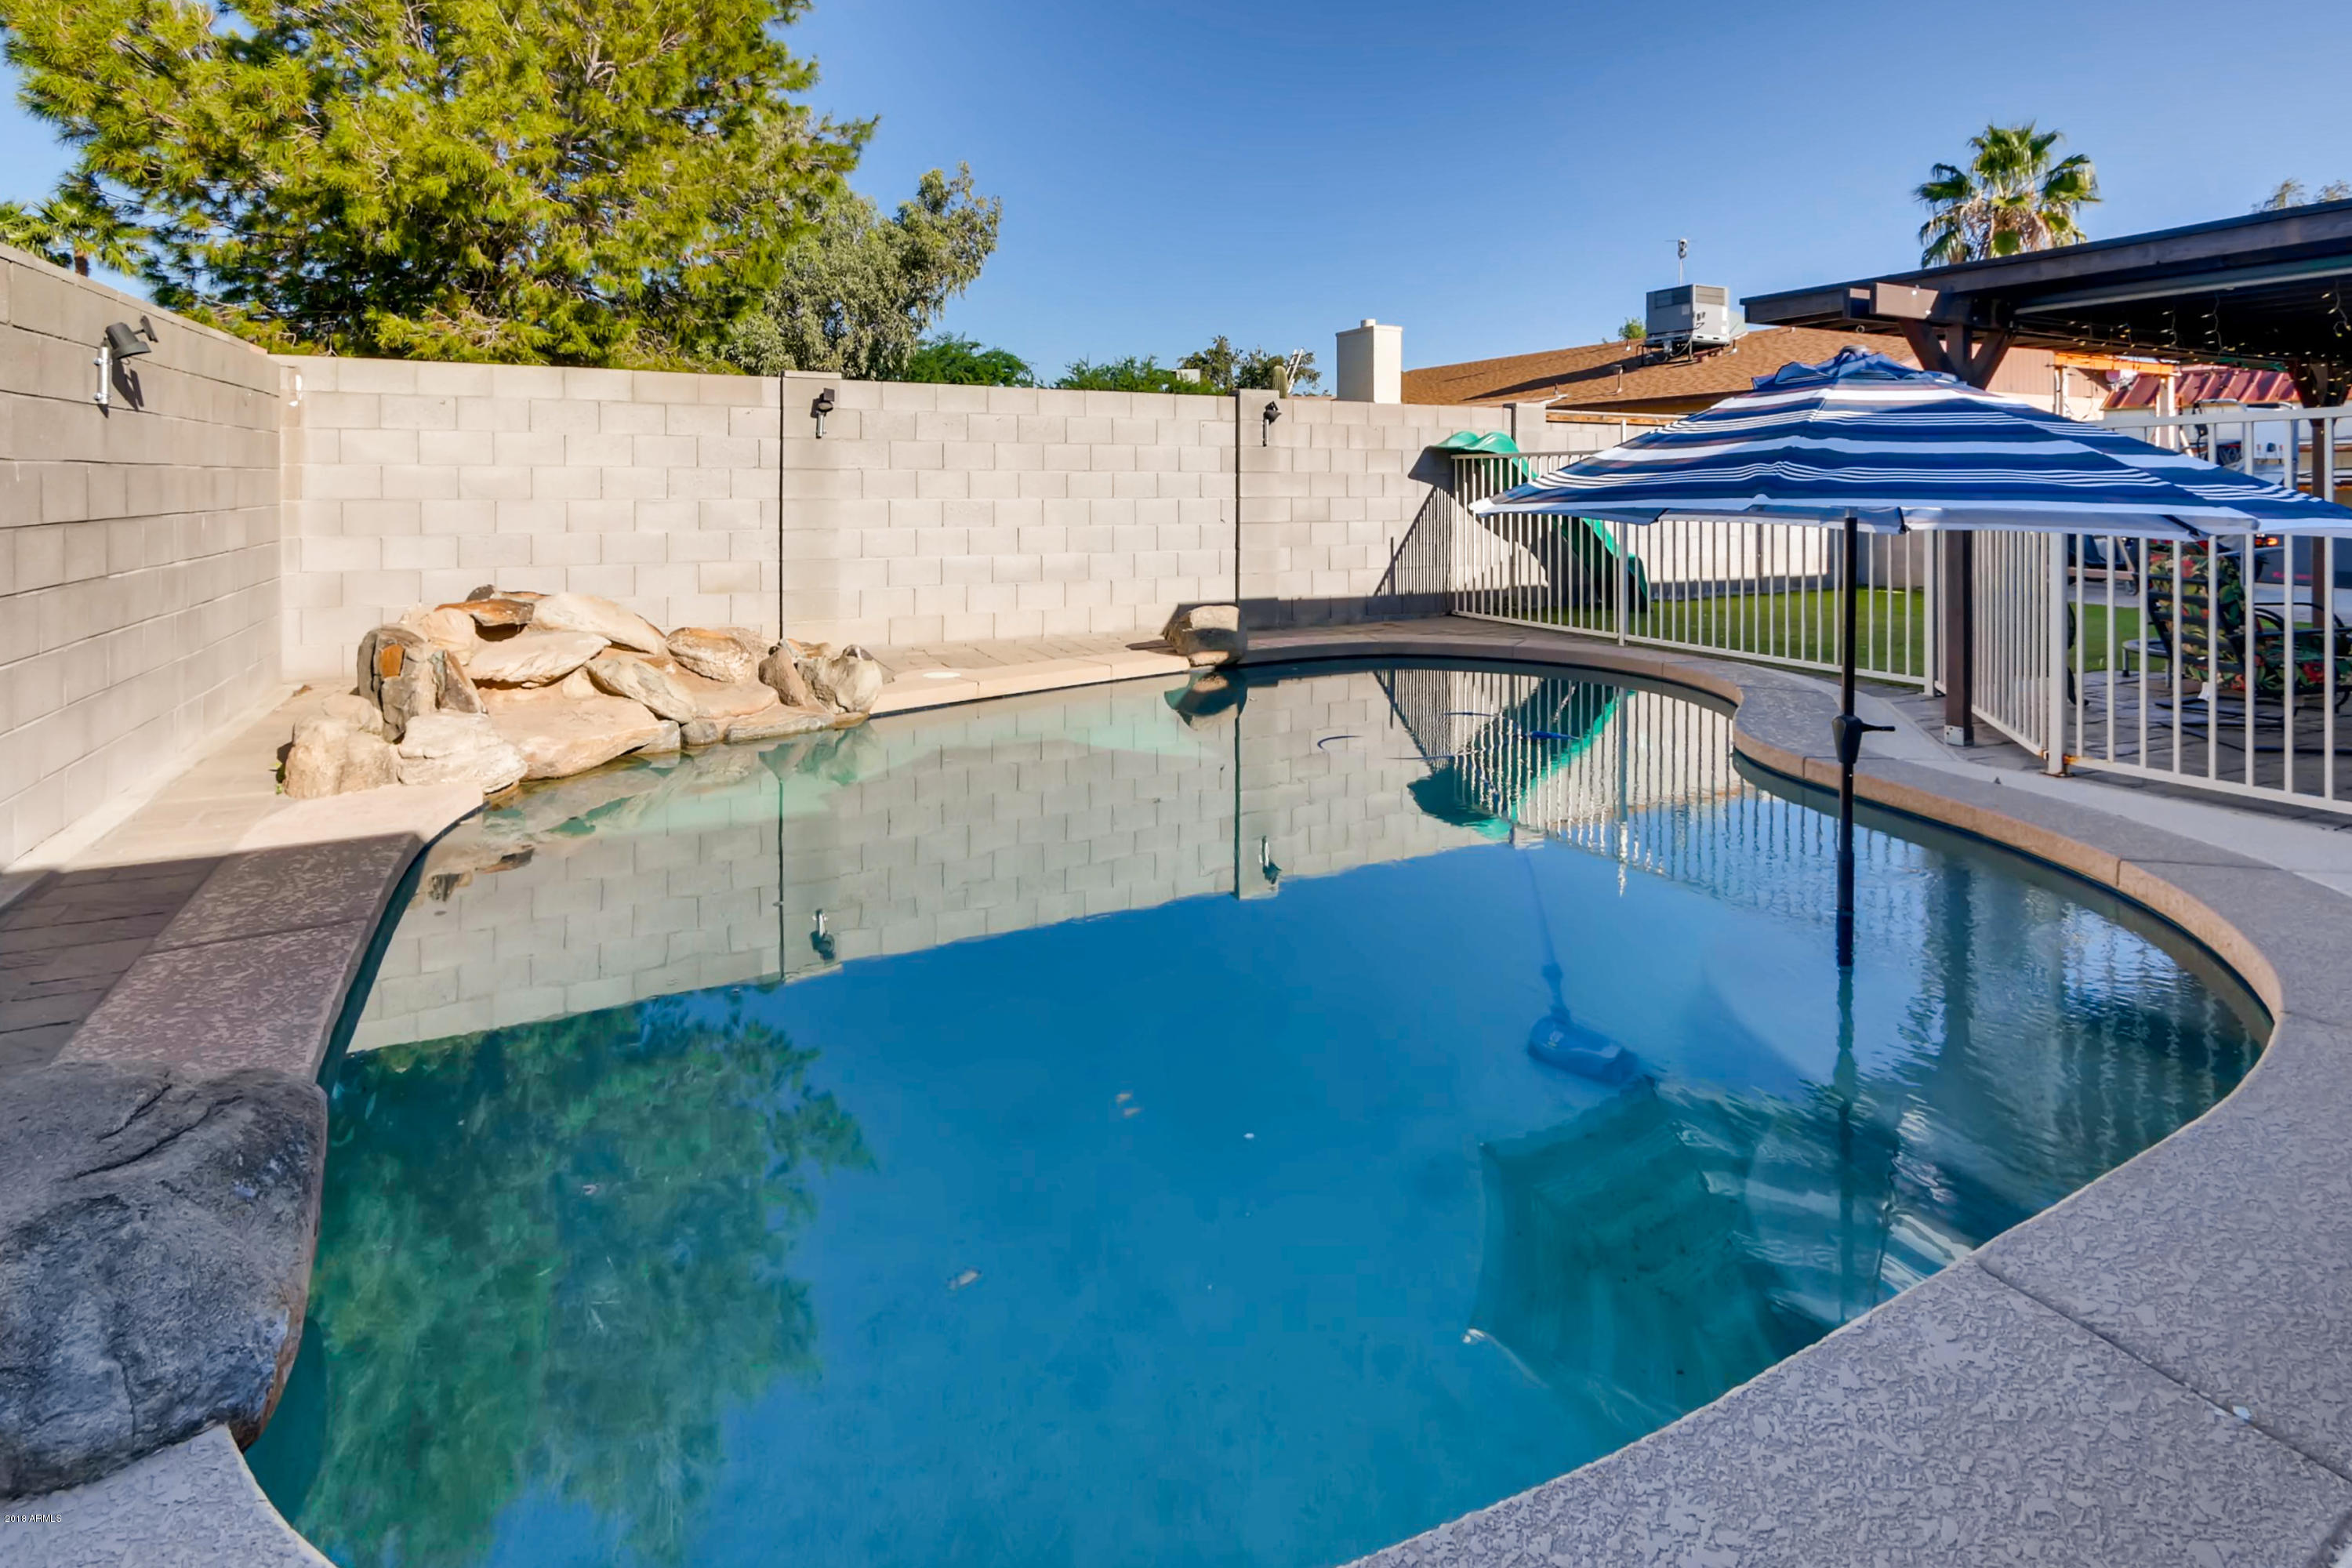 MLS 5844910 1706 W Hononegh Drive, Phoenix, AZ 85027 Phoenix AZ Desert Valley Estates